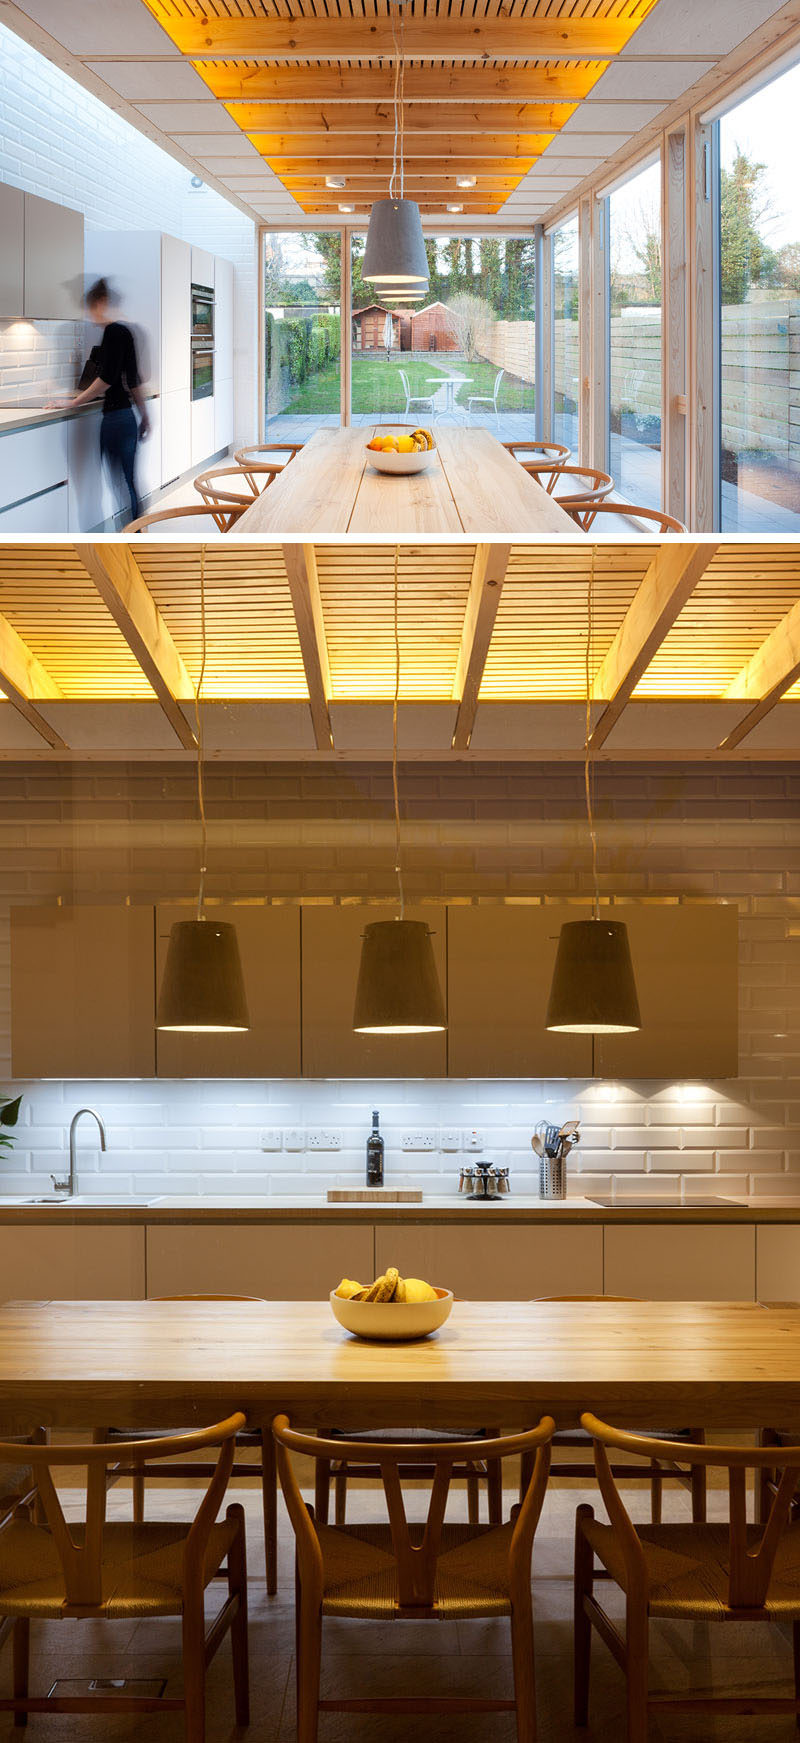 At night, this modern house extension is lit up with concealed LED strips that are located within the ceiling to highlight the exposed timber joists and to create a calm and relaxing atmosphere.